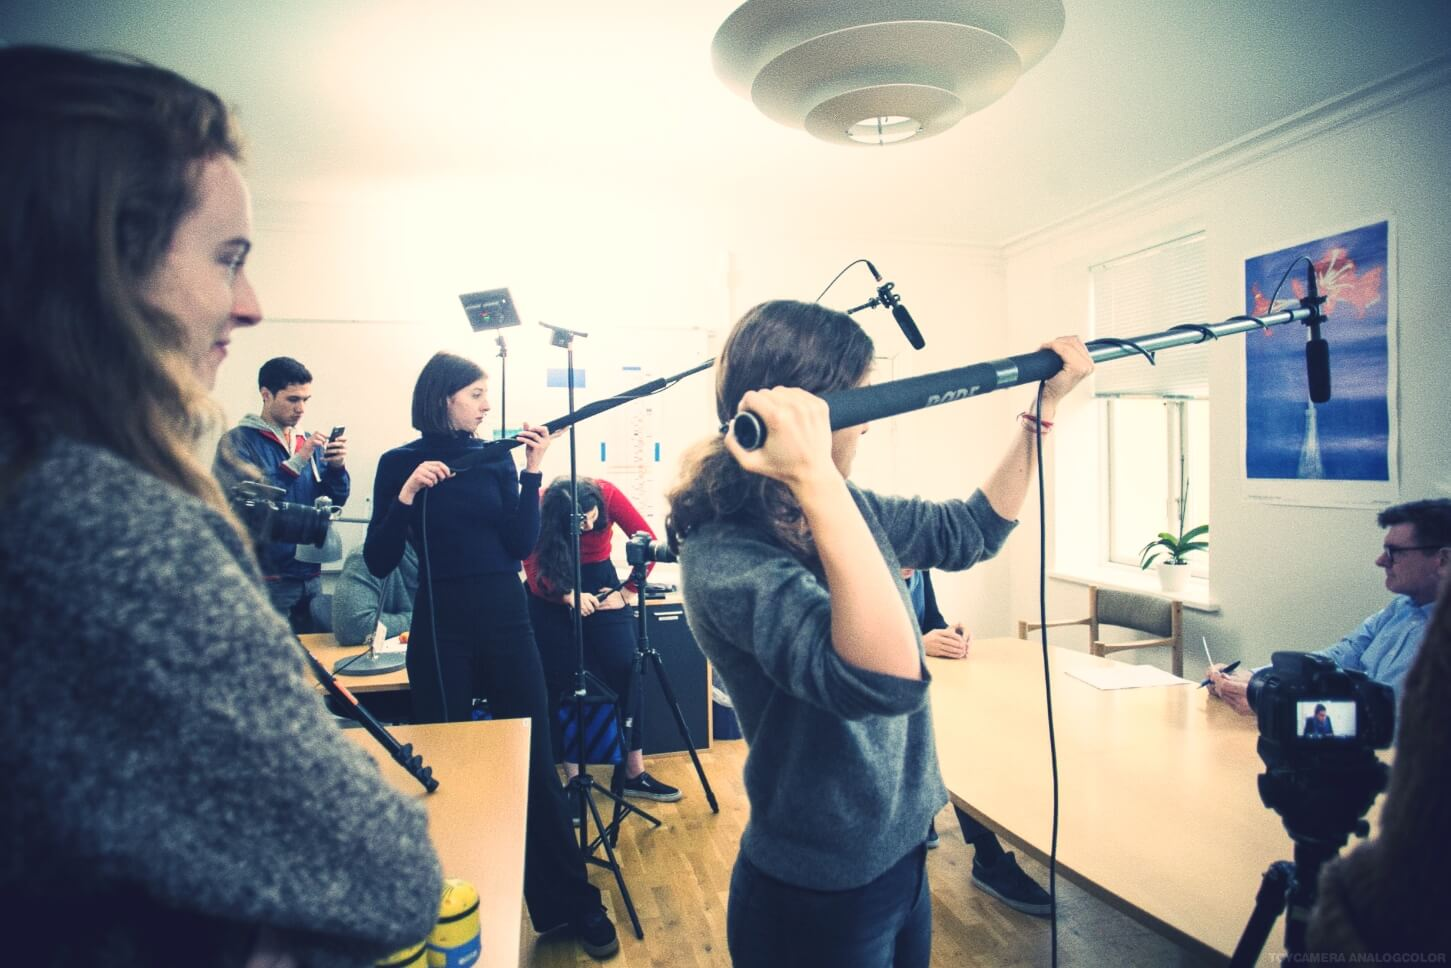 Folk High School Moviemaking Class at International People's College in Denmark